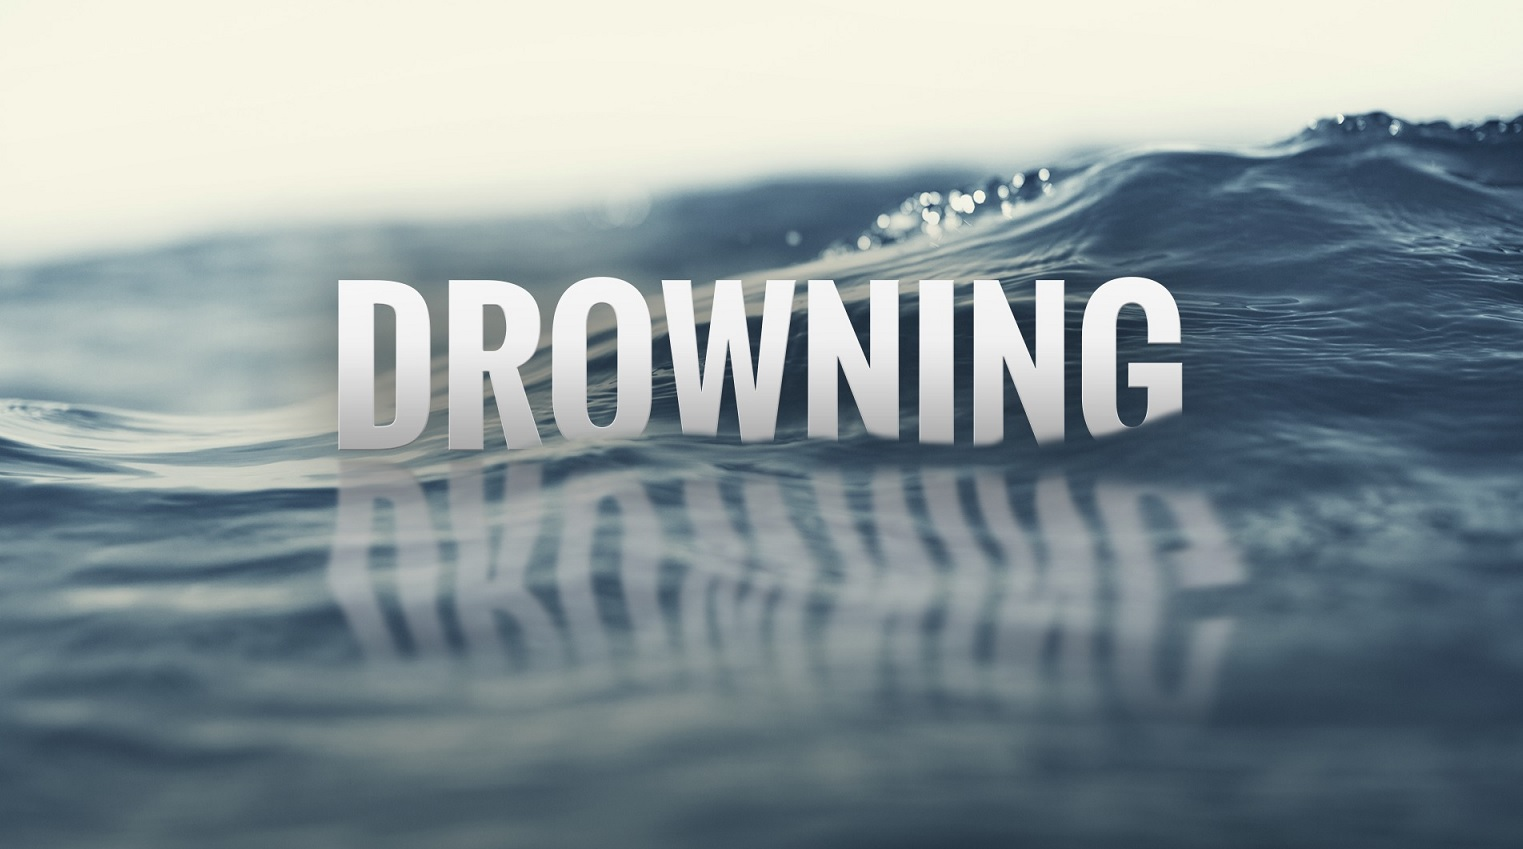 drowning_416988-842137442